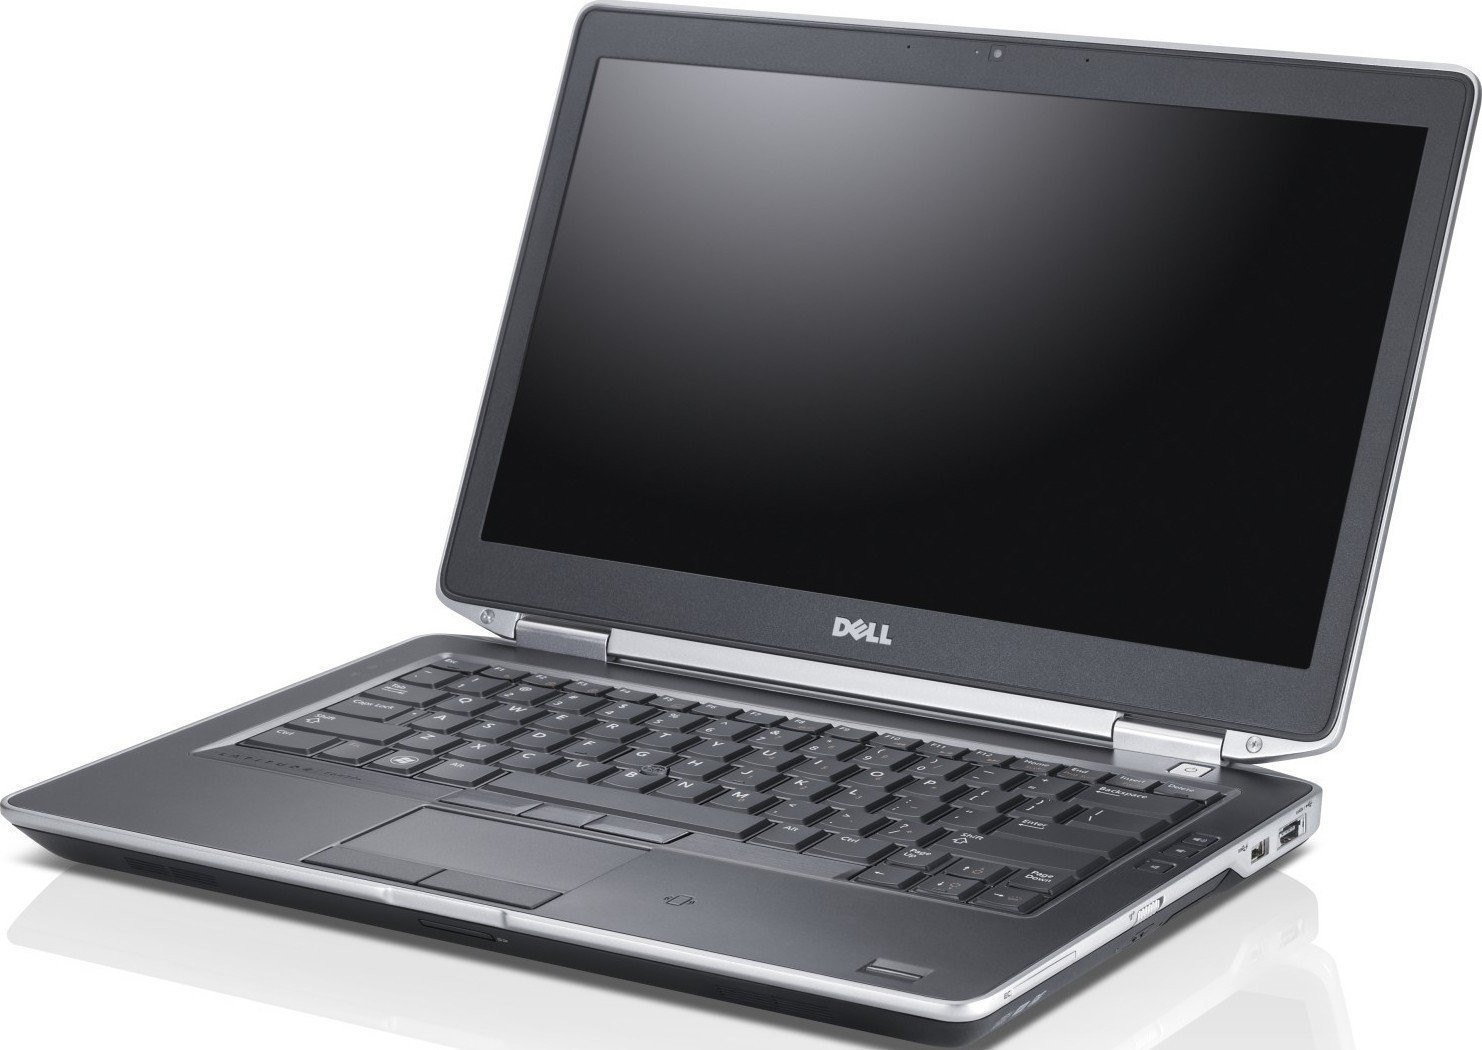 Dell Latitude E6420 Laptop WEBCAM - HDMI - i5 2.5ghz - 4GB DDR3 - 160GB - DVDRW - Windows 7 64bit - REMIS A NEUF - REFURBISHED